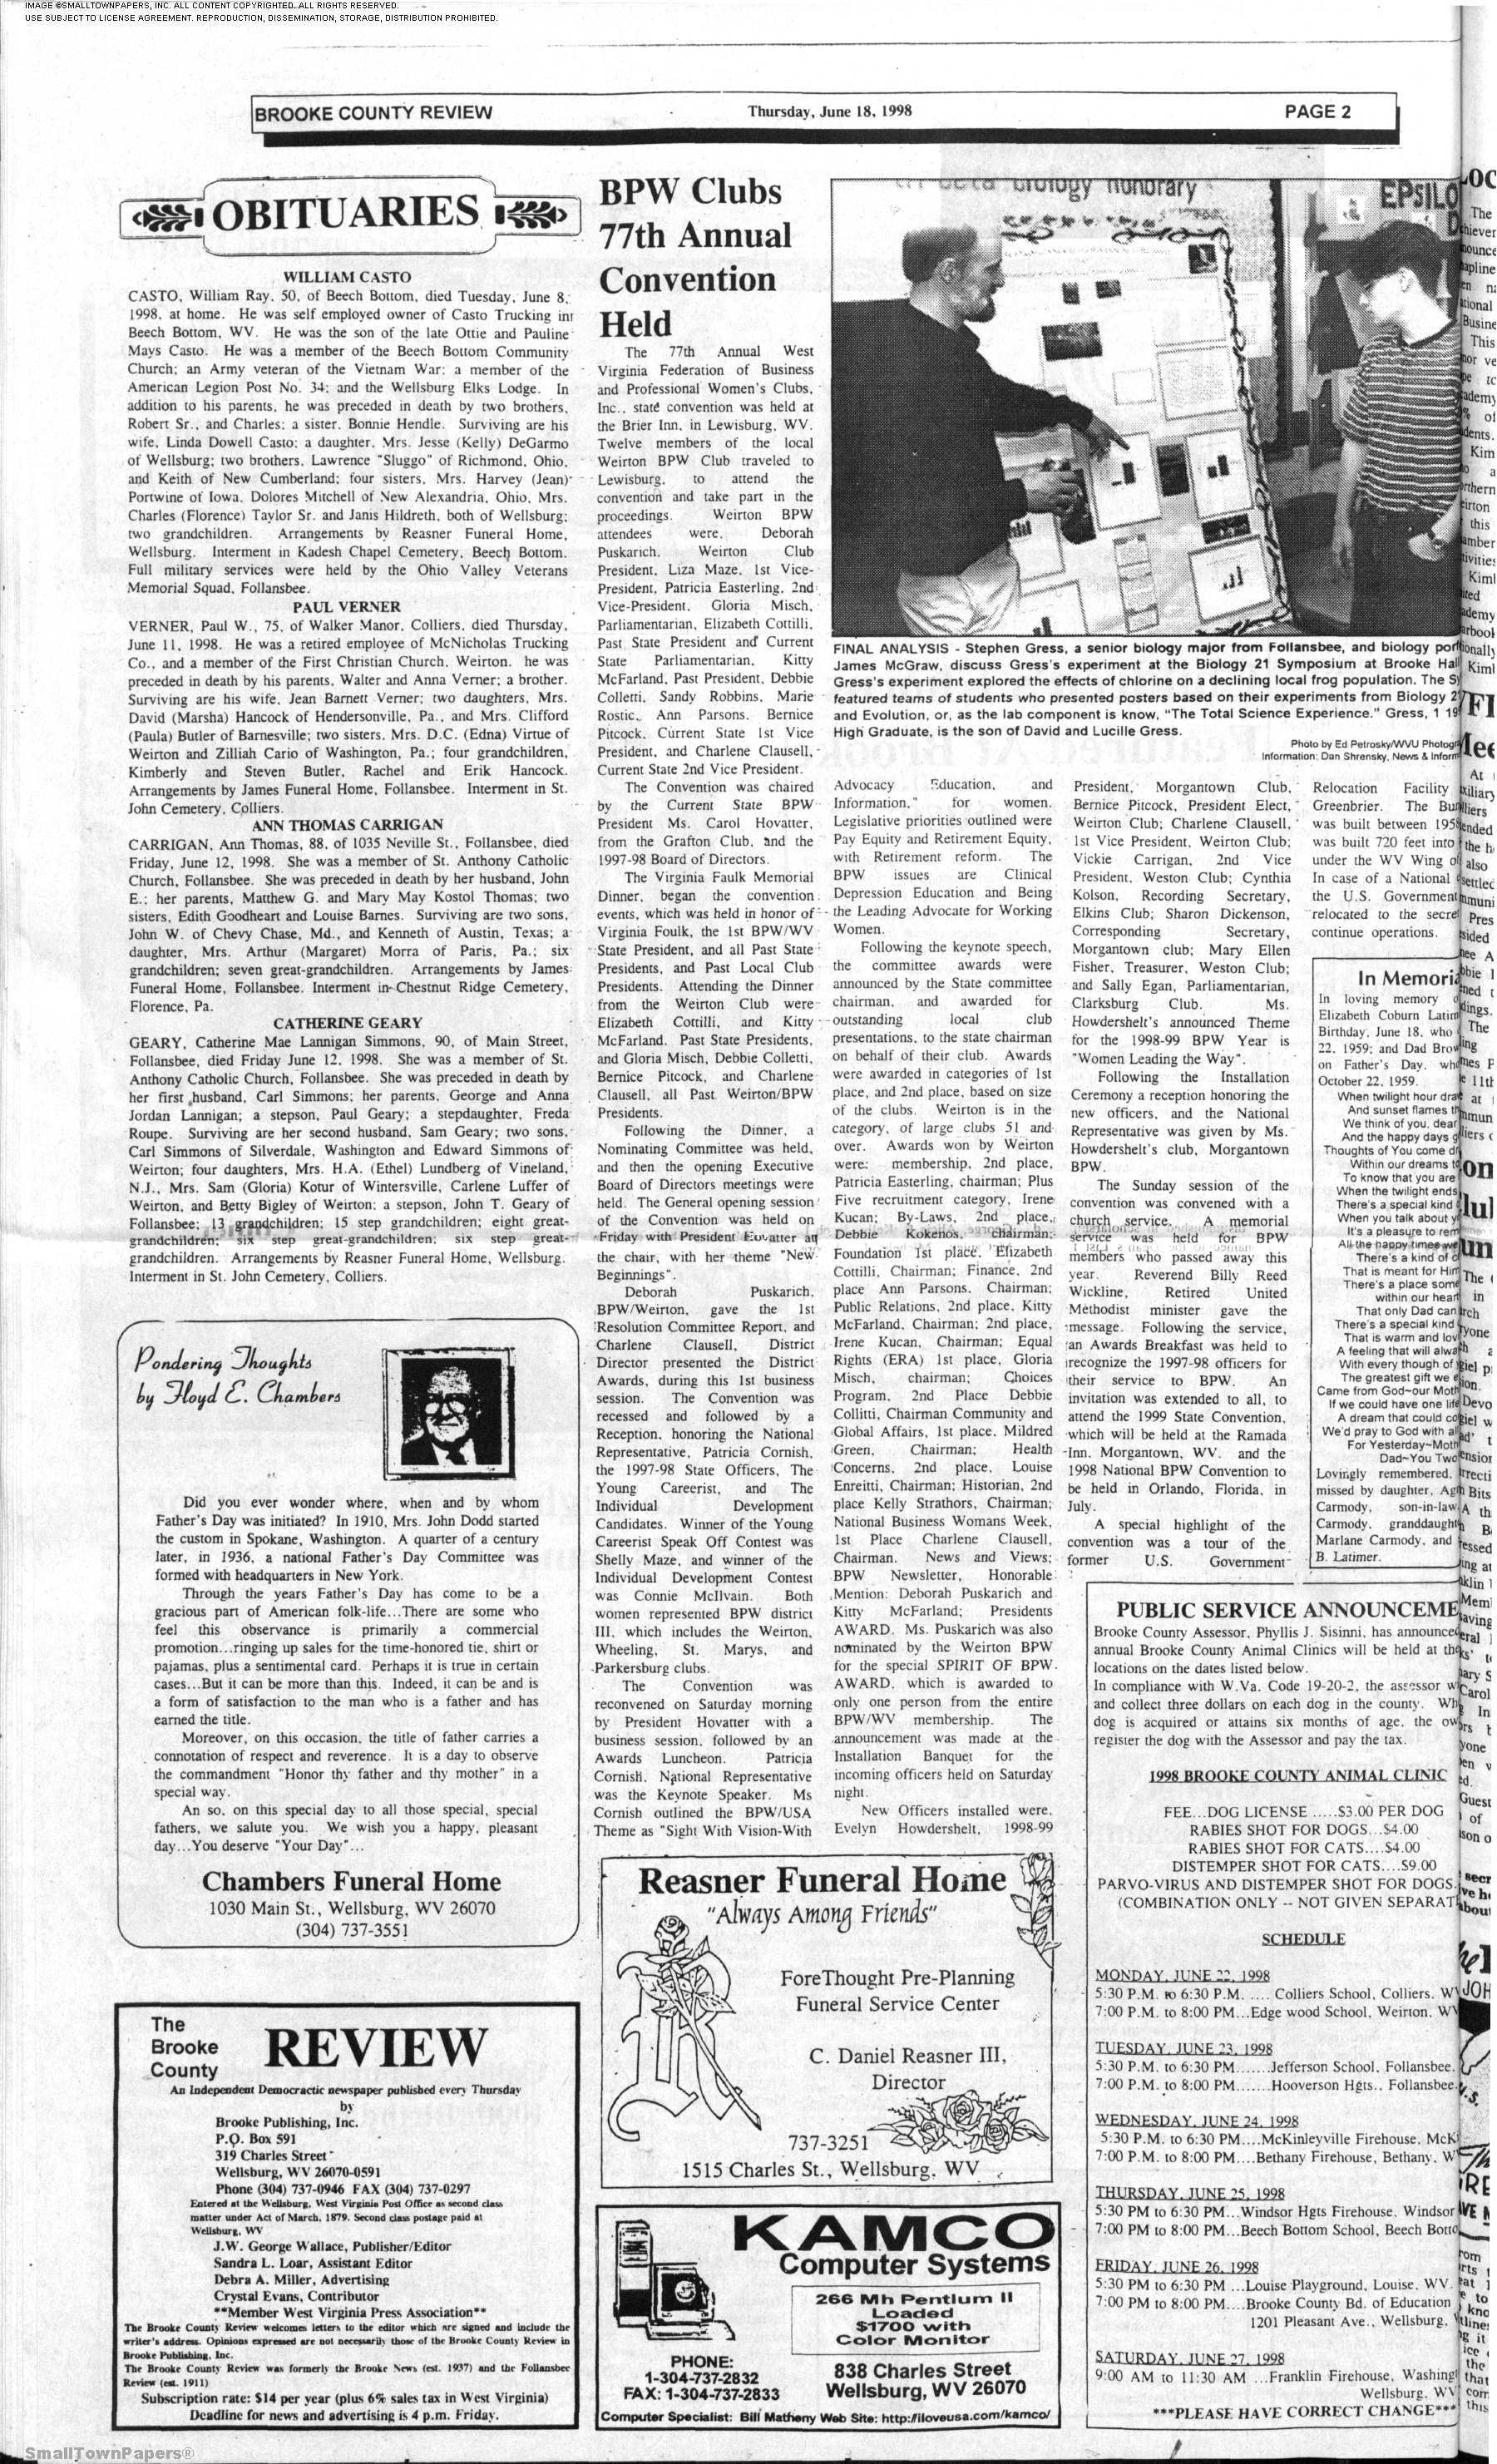 The Brooke County Review June 18 1998 Page 2